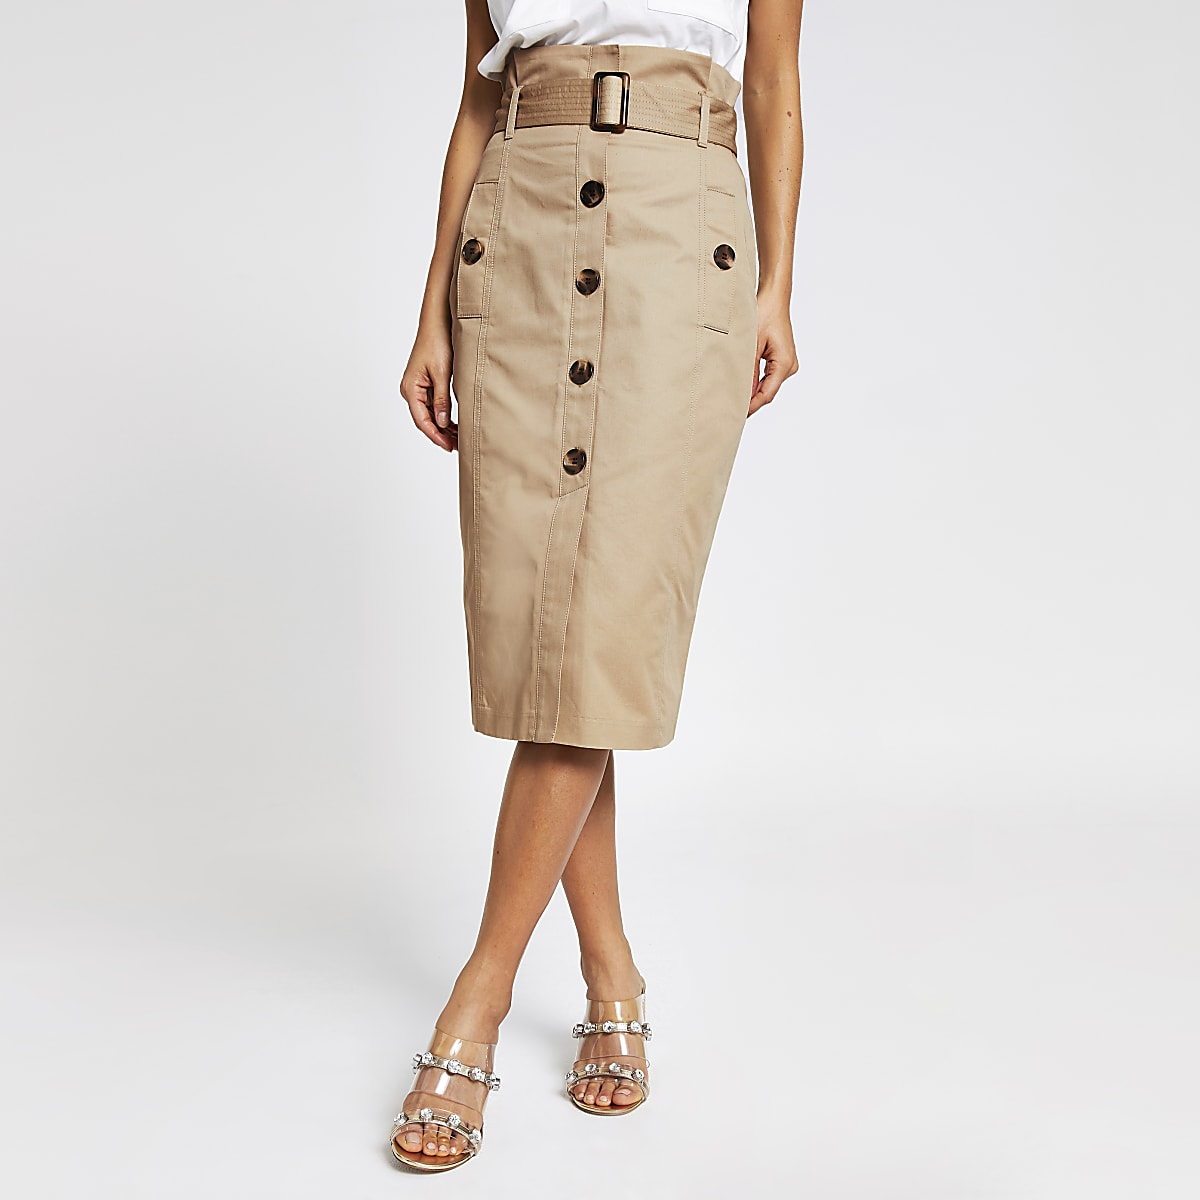 quality design large discount on wholesale Beige belted pencil skirt